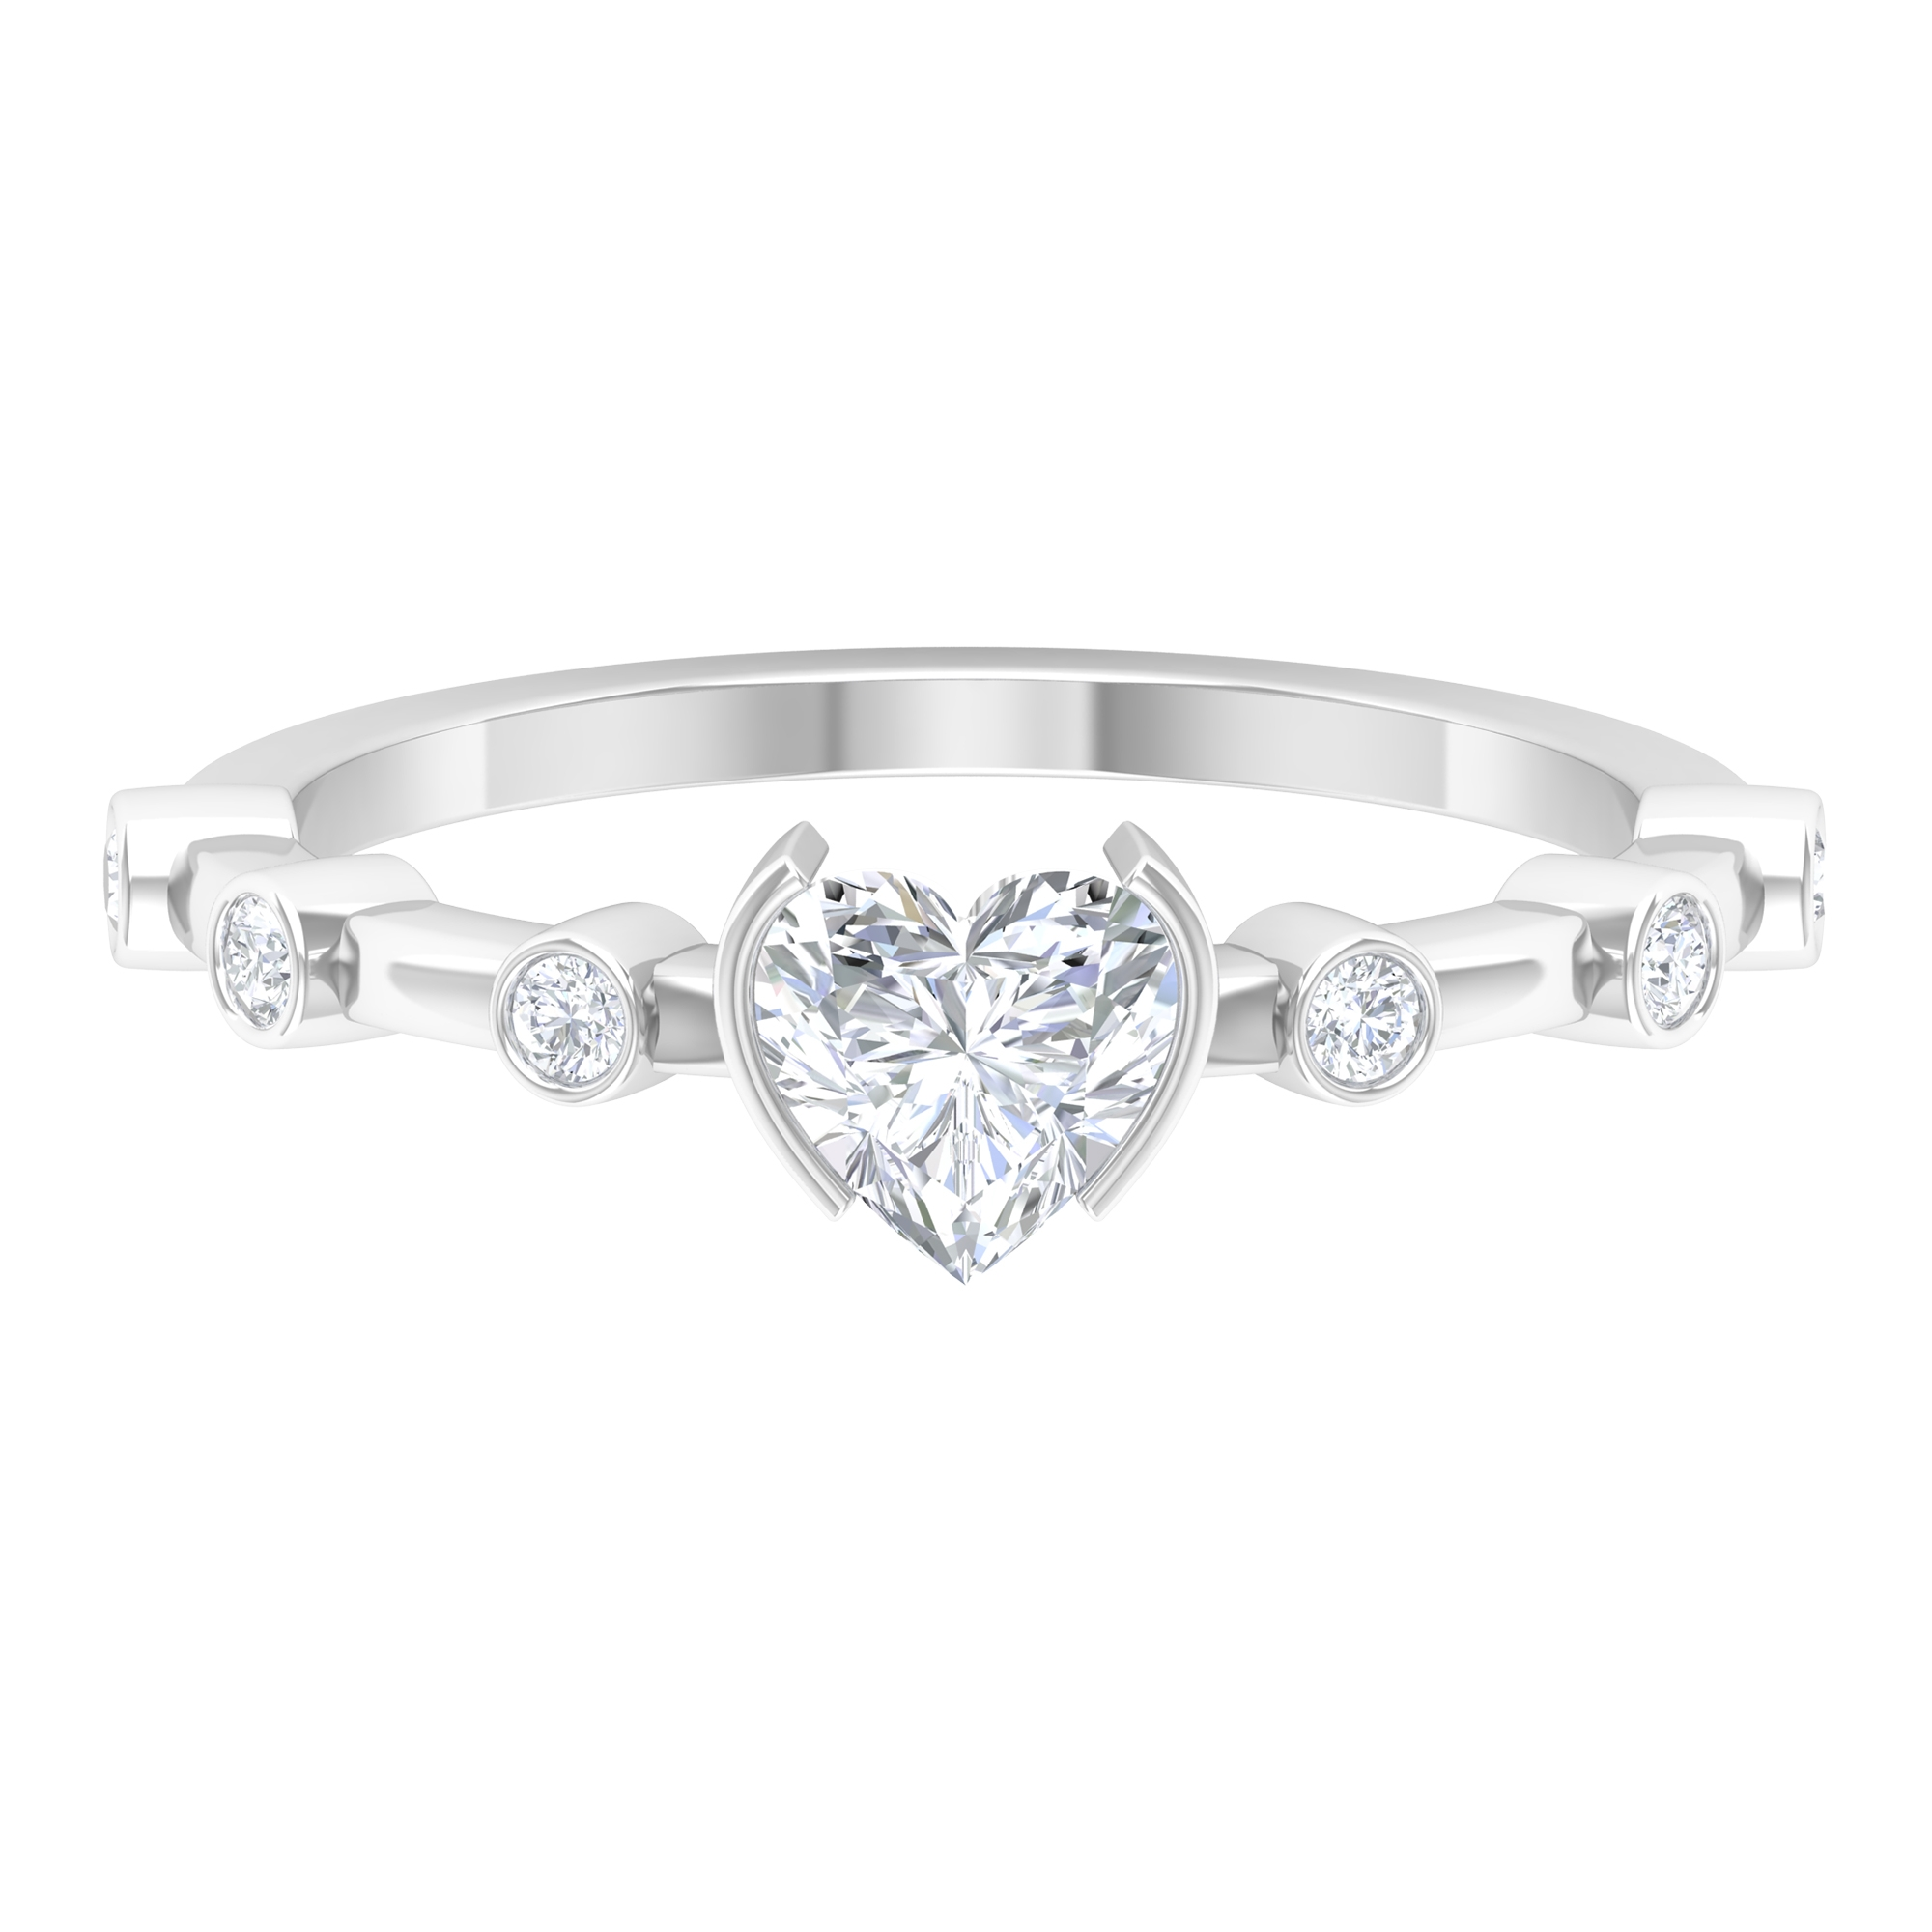 3/4 CT Heart Shape Diamond Solitaire Ring in Half Bezel Setting with Spaced Set Side Stones